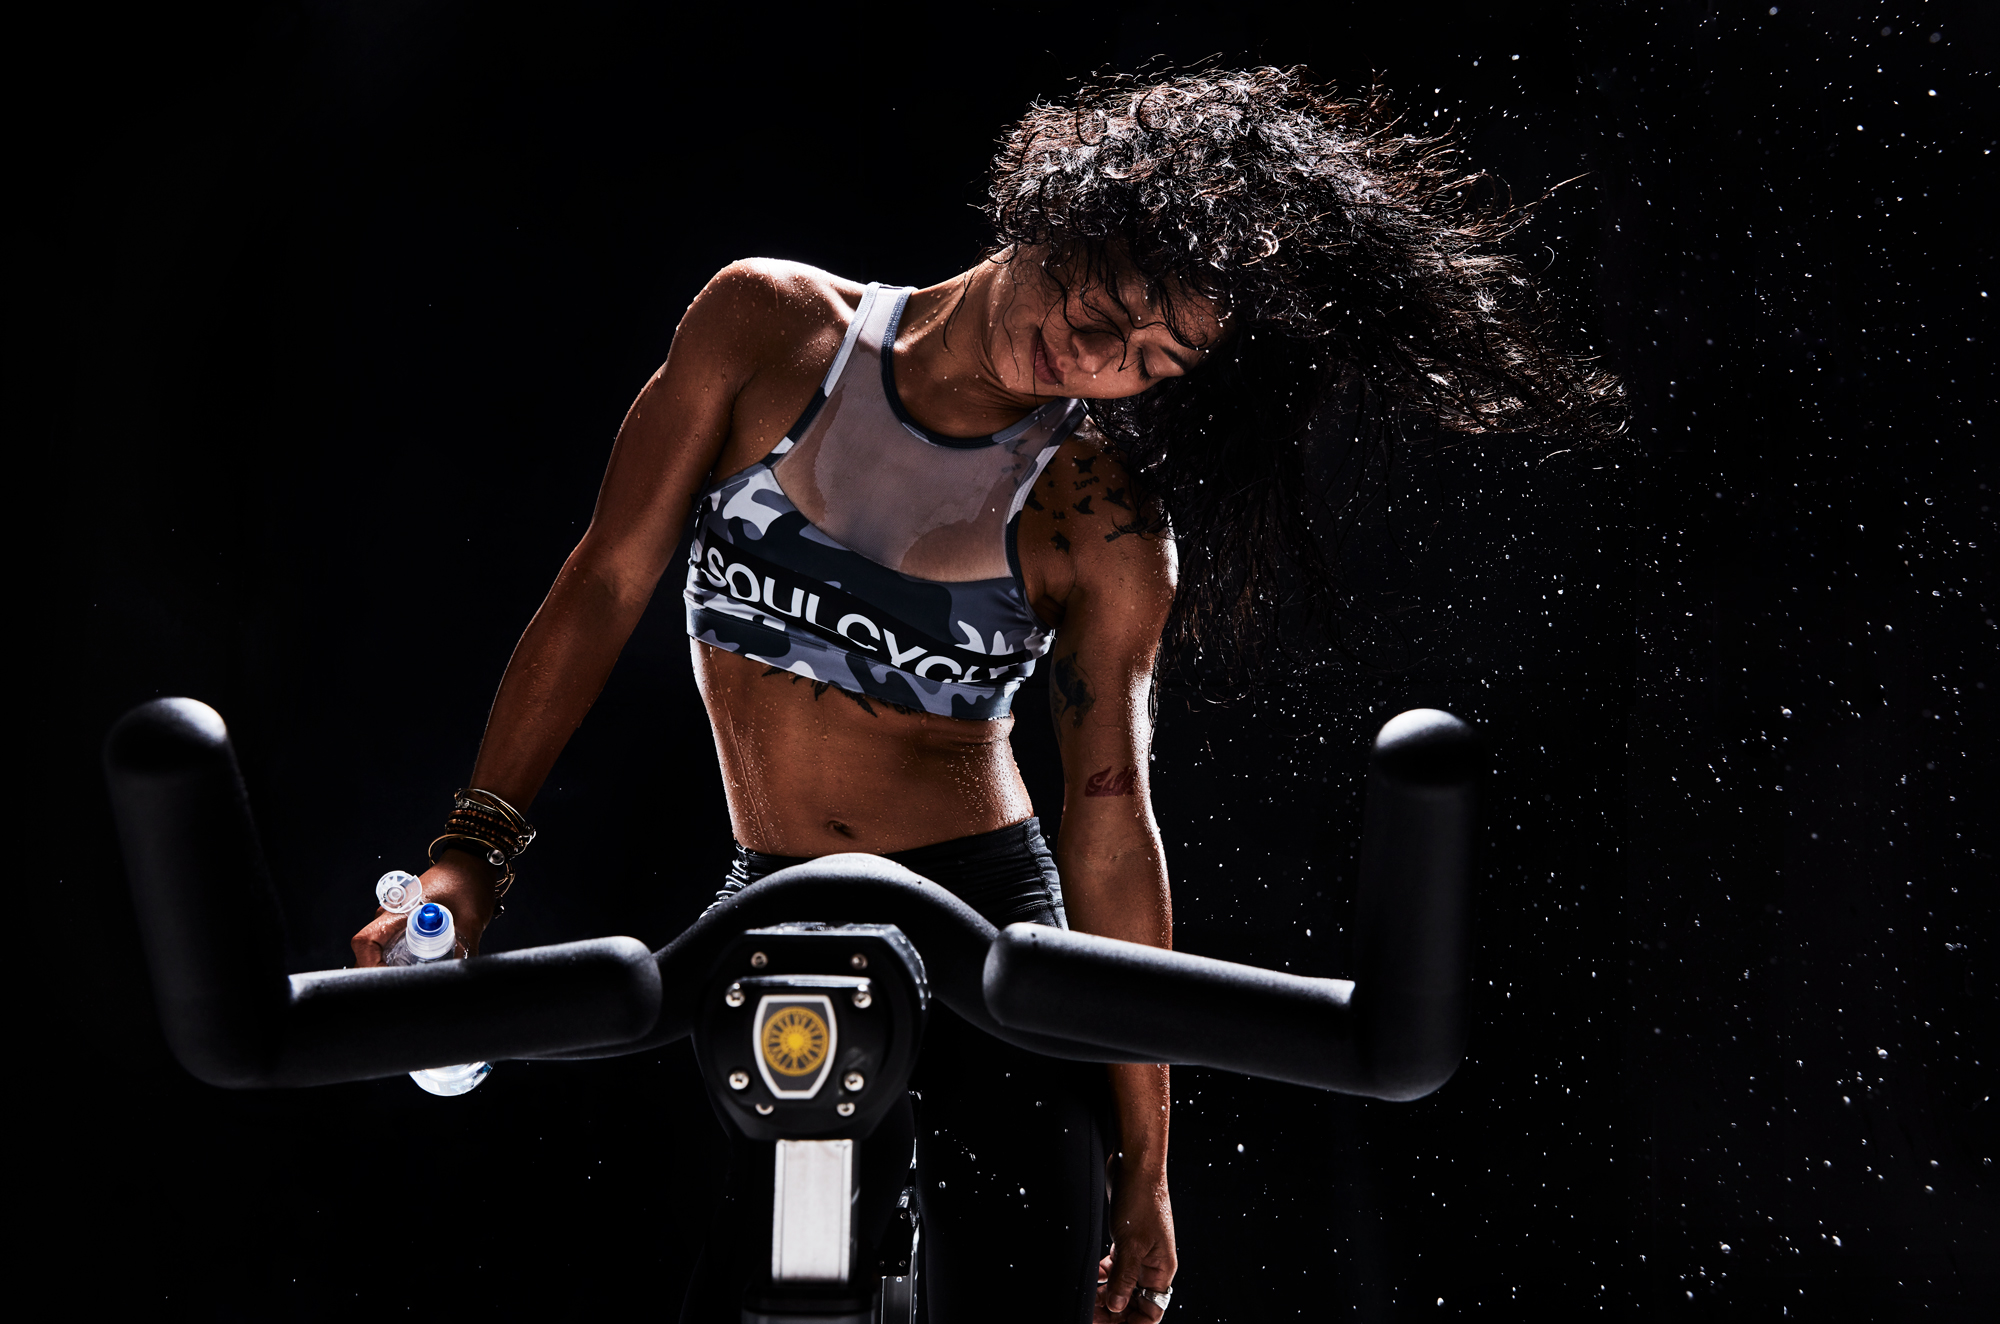 SoulCycle |